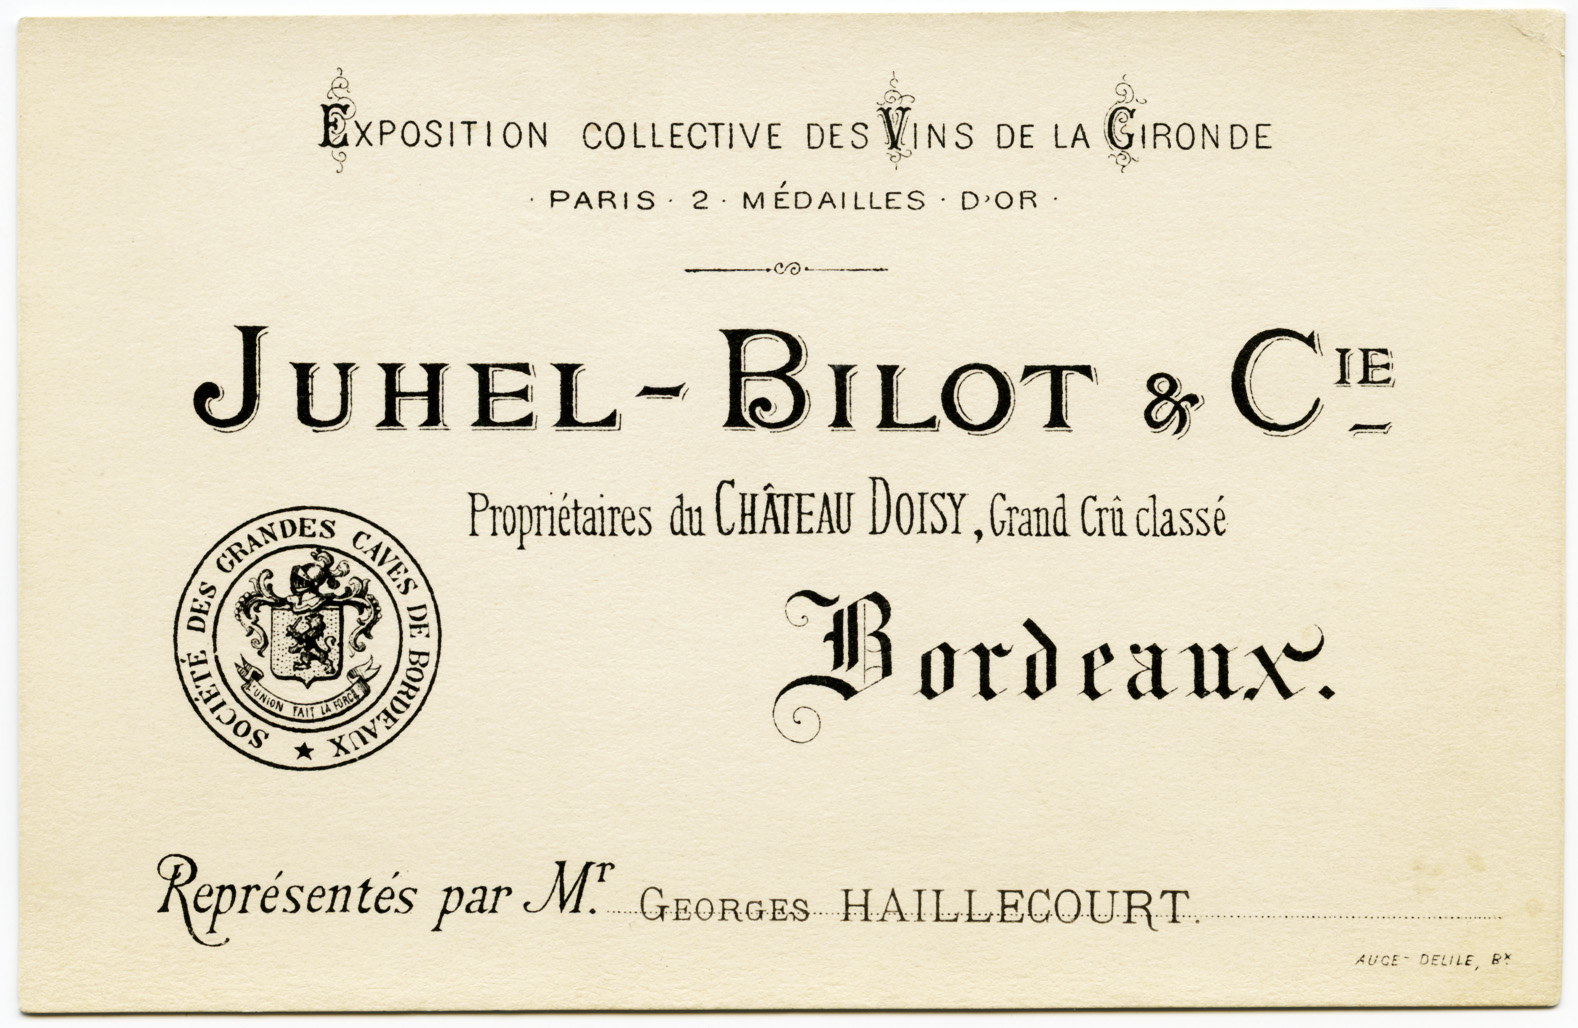 Juhel-Bilot & Cie French Business Card | Old Design Shop Blog